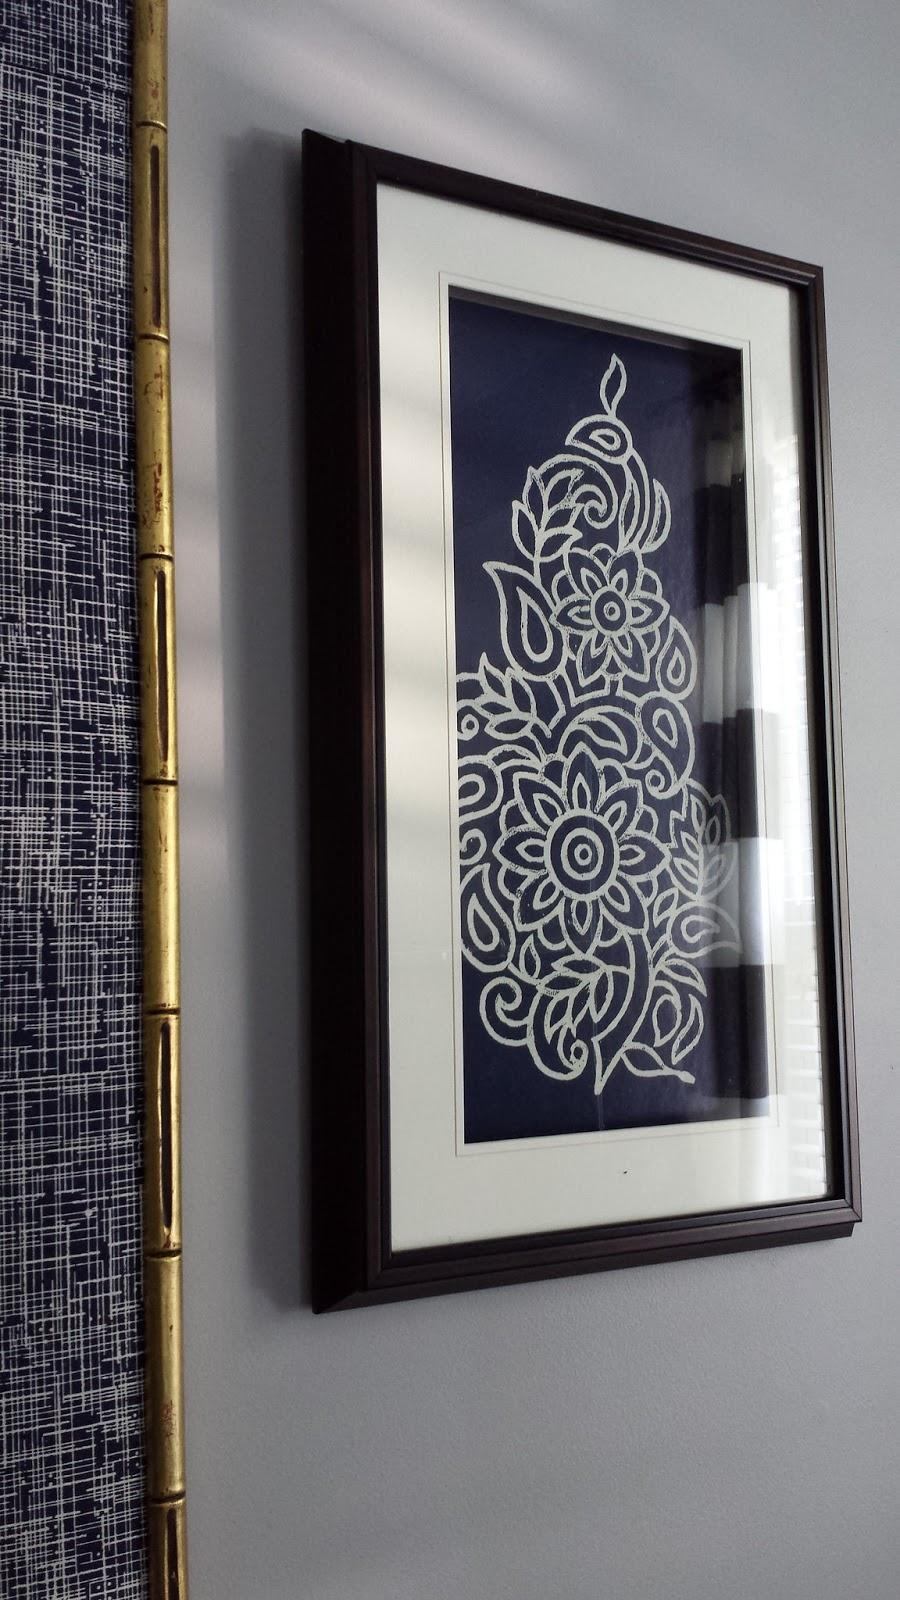 Focal Point Styling: Diy Indigo Wall Art With Framed Fabric For Framed Fabric Wall Art (Image 6 of 20)